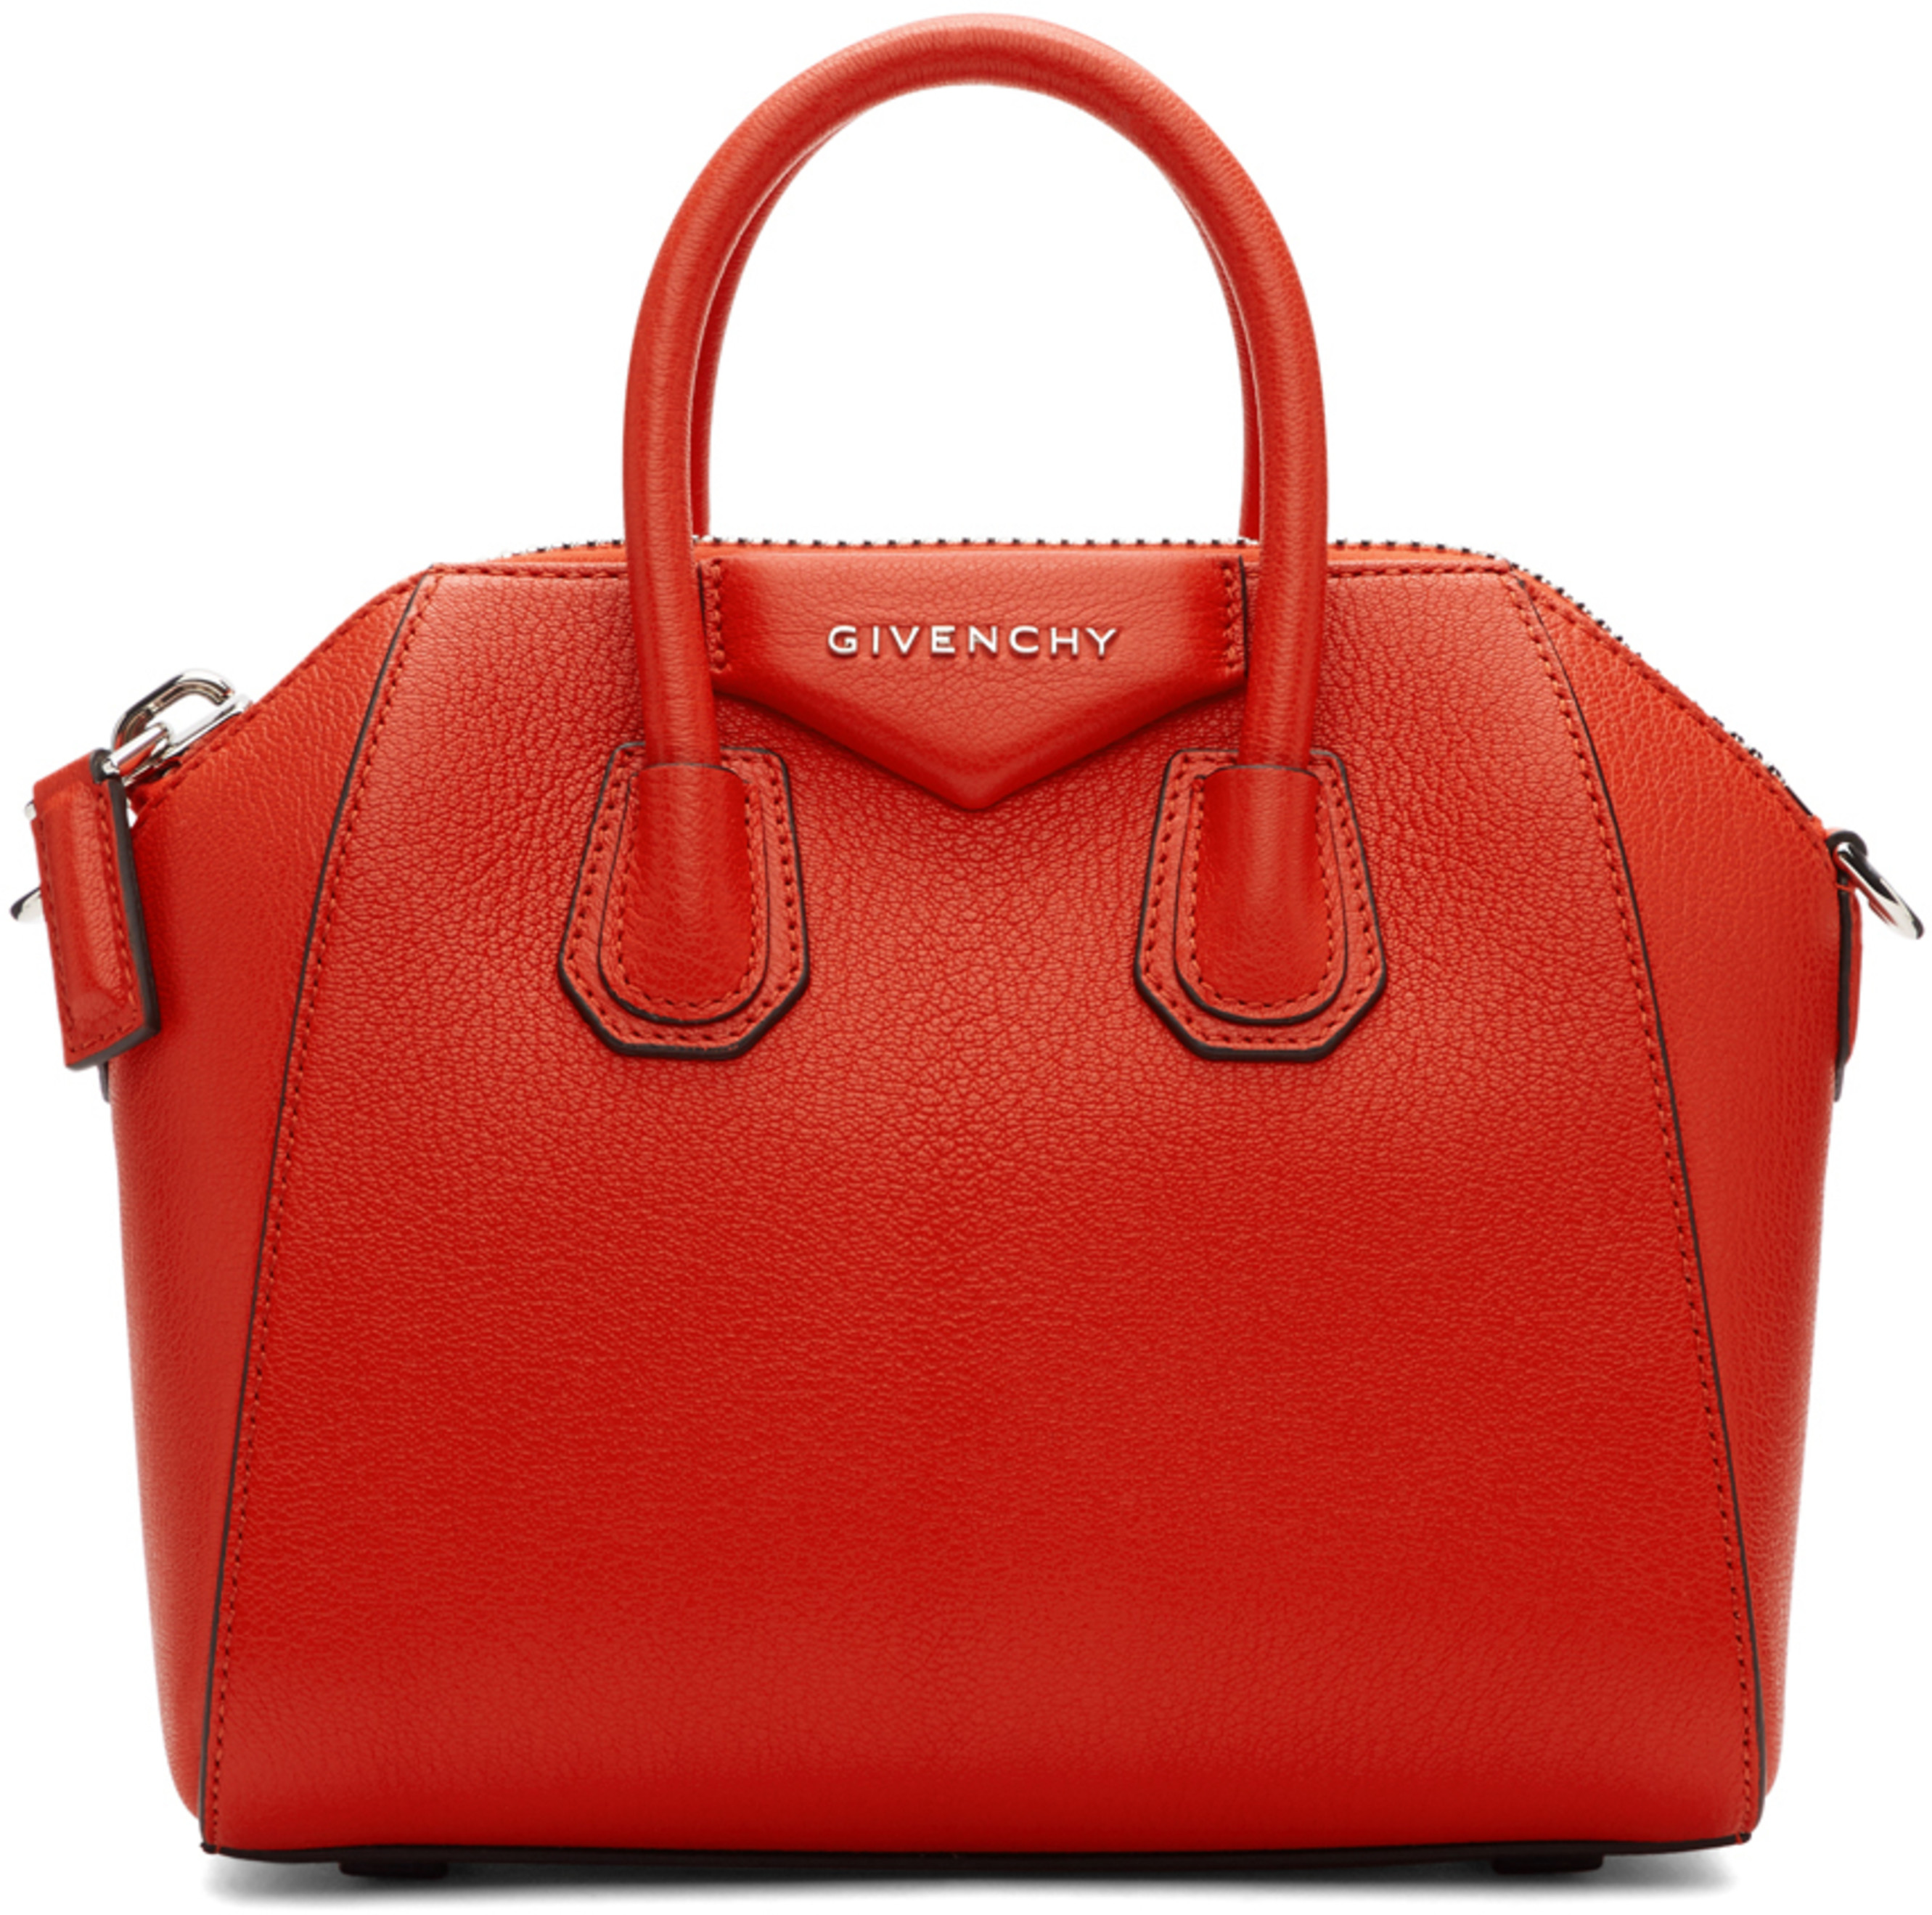 1f3c8f2ea2 Givenchy bags for Women